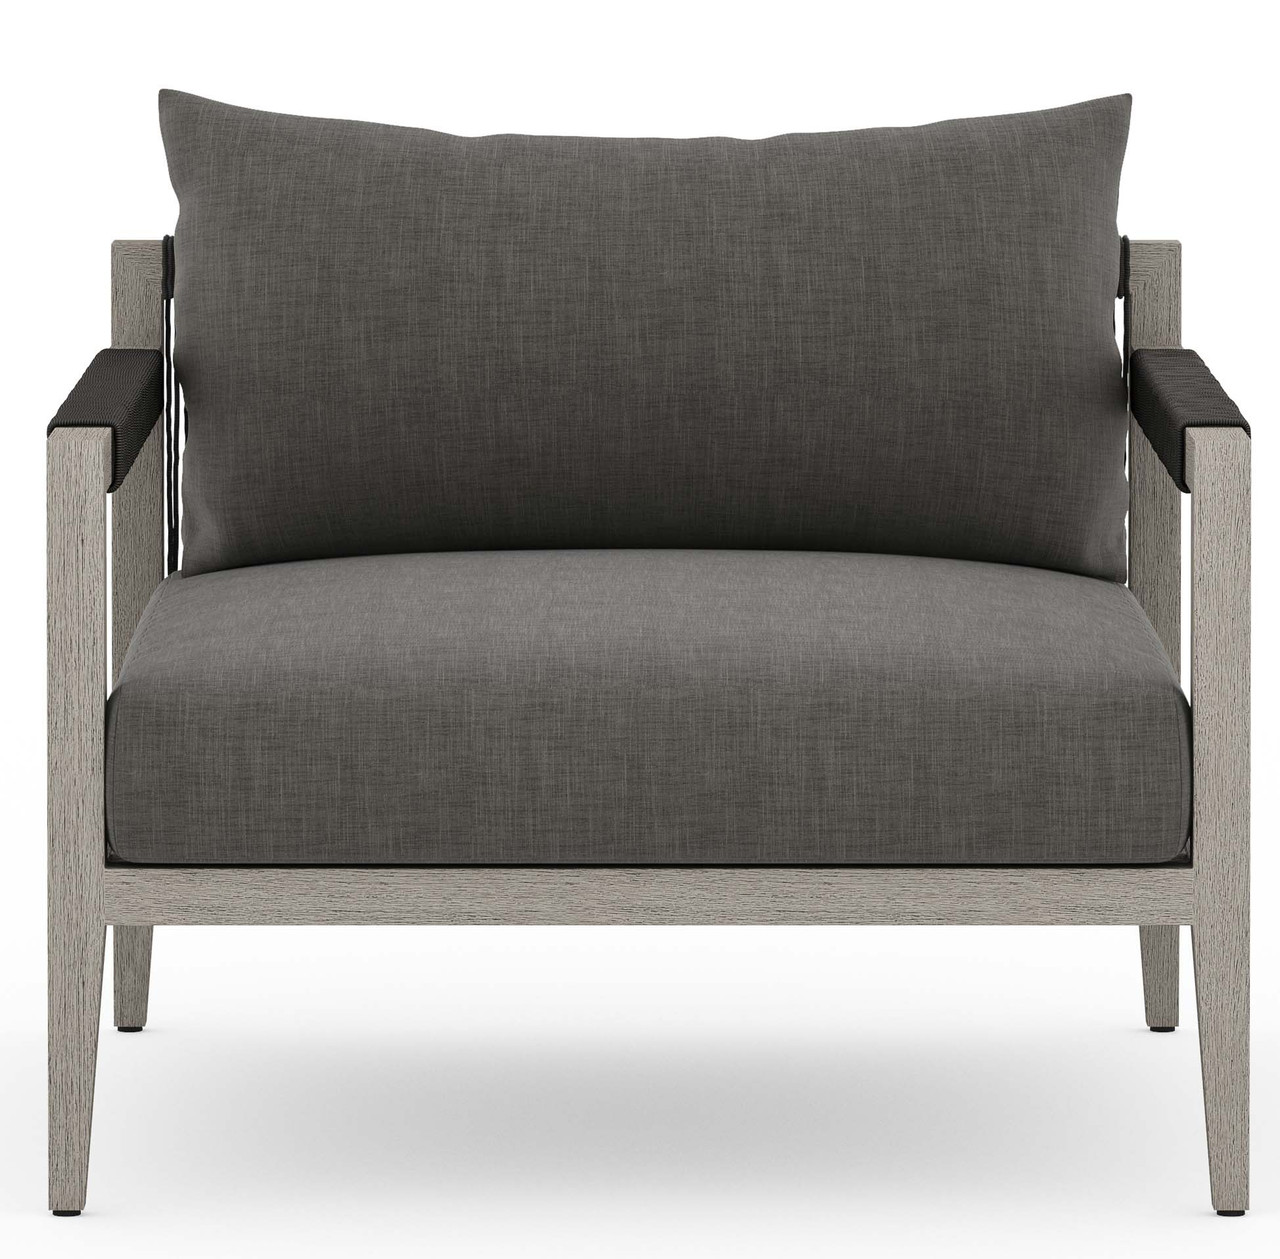 Silhouette Outdoor Lounge Chair, Weathered Grey